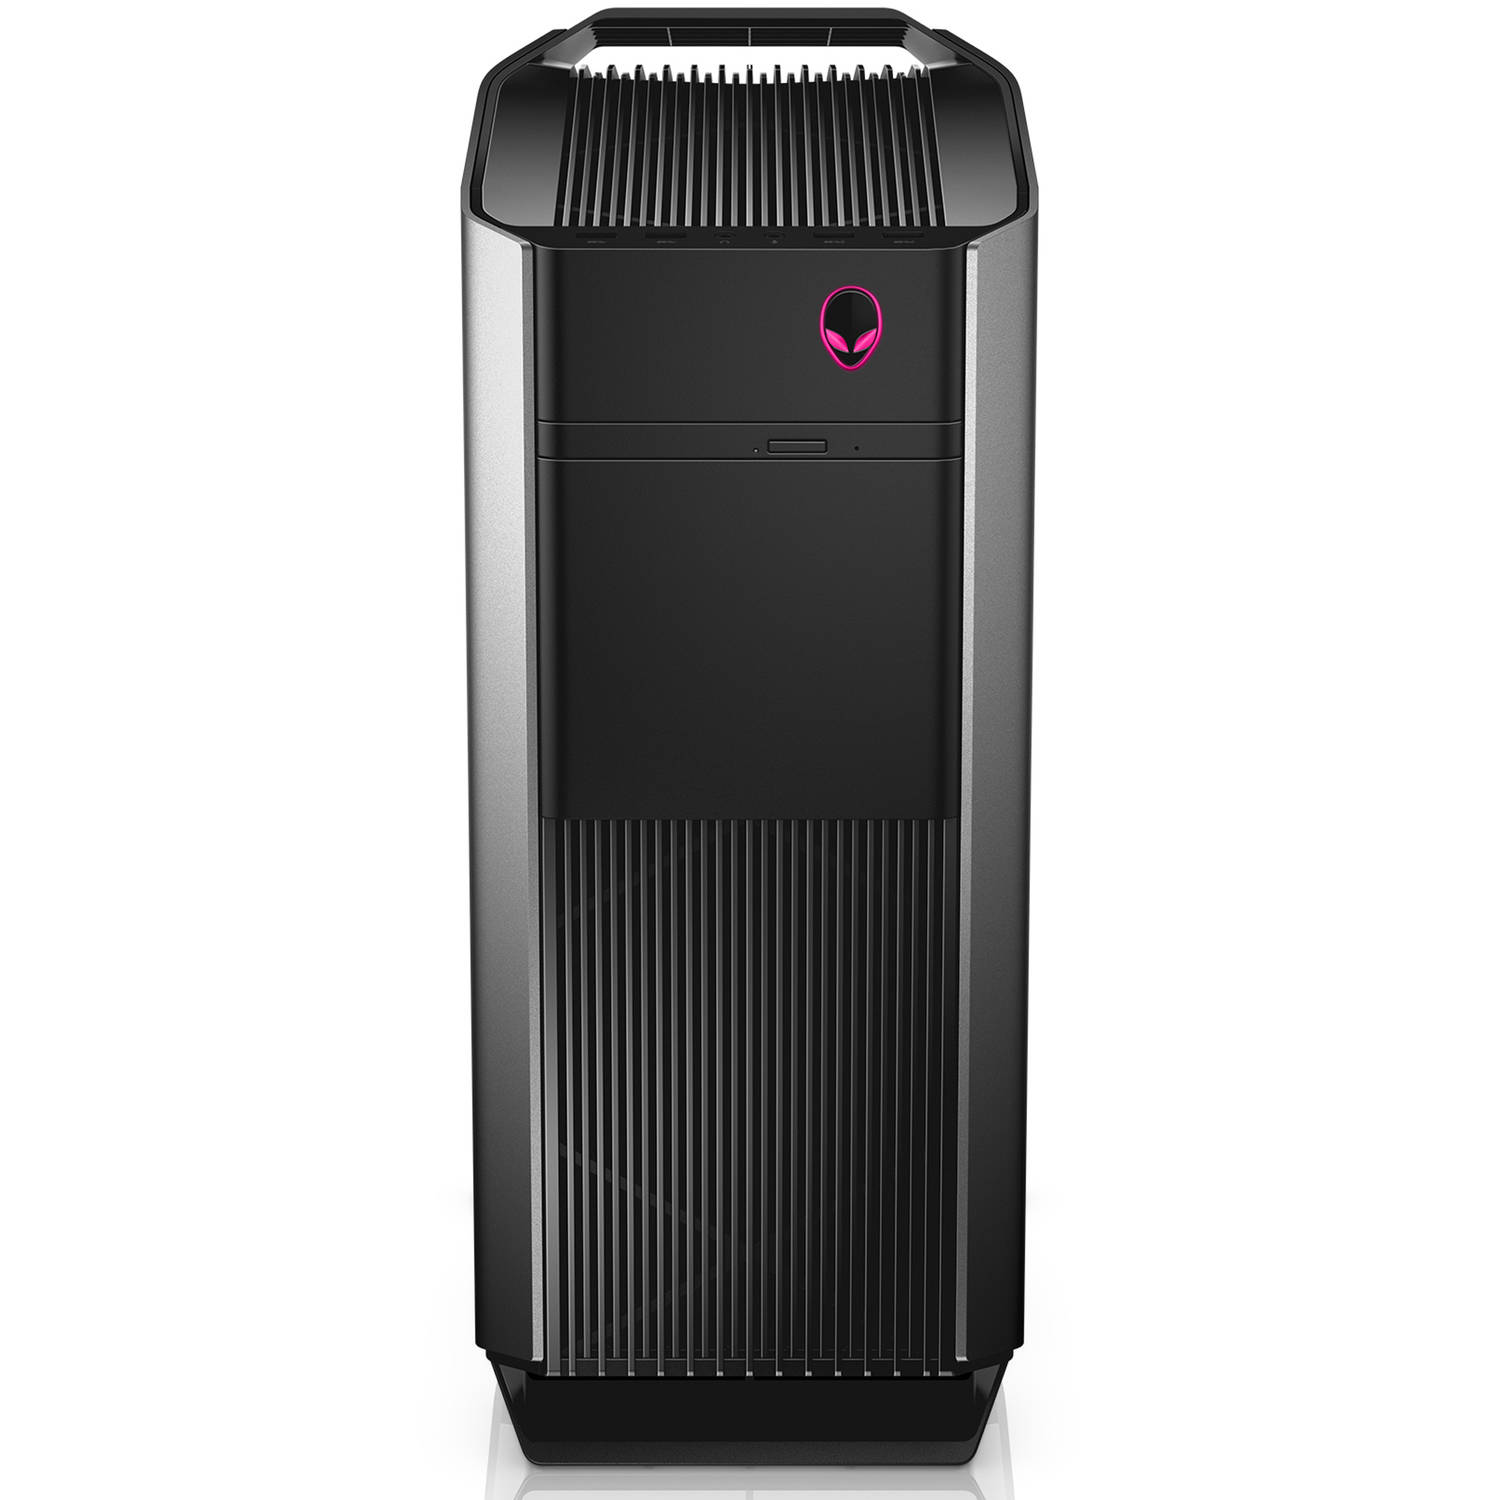 Alienware Aurora AUR5-2571SLV Desktop PC with Intel Core i5-6400 Processor, 8GB Memory, 1TB Hard Drive and Windows 10 Home (Monitor Not Included)